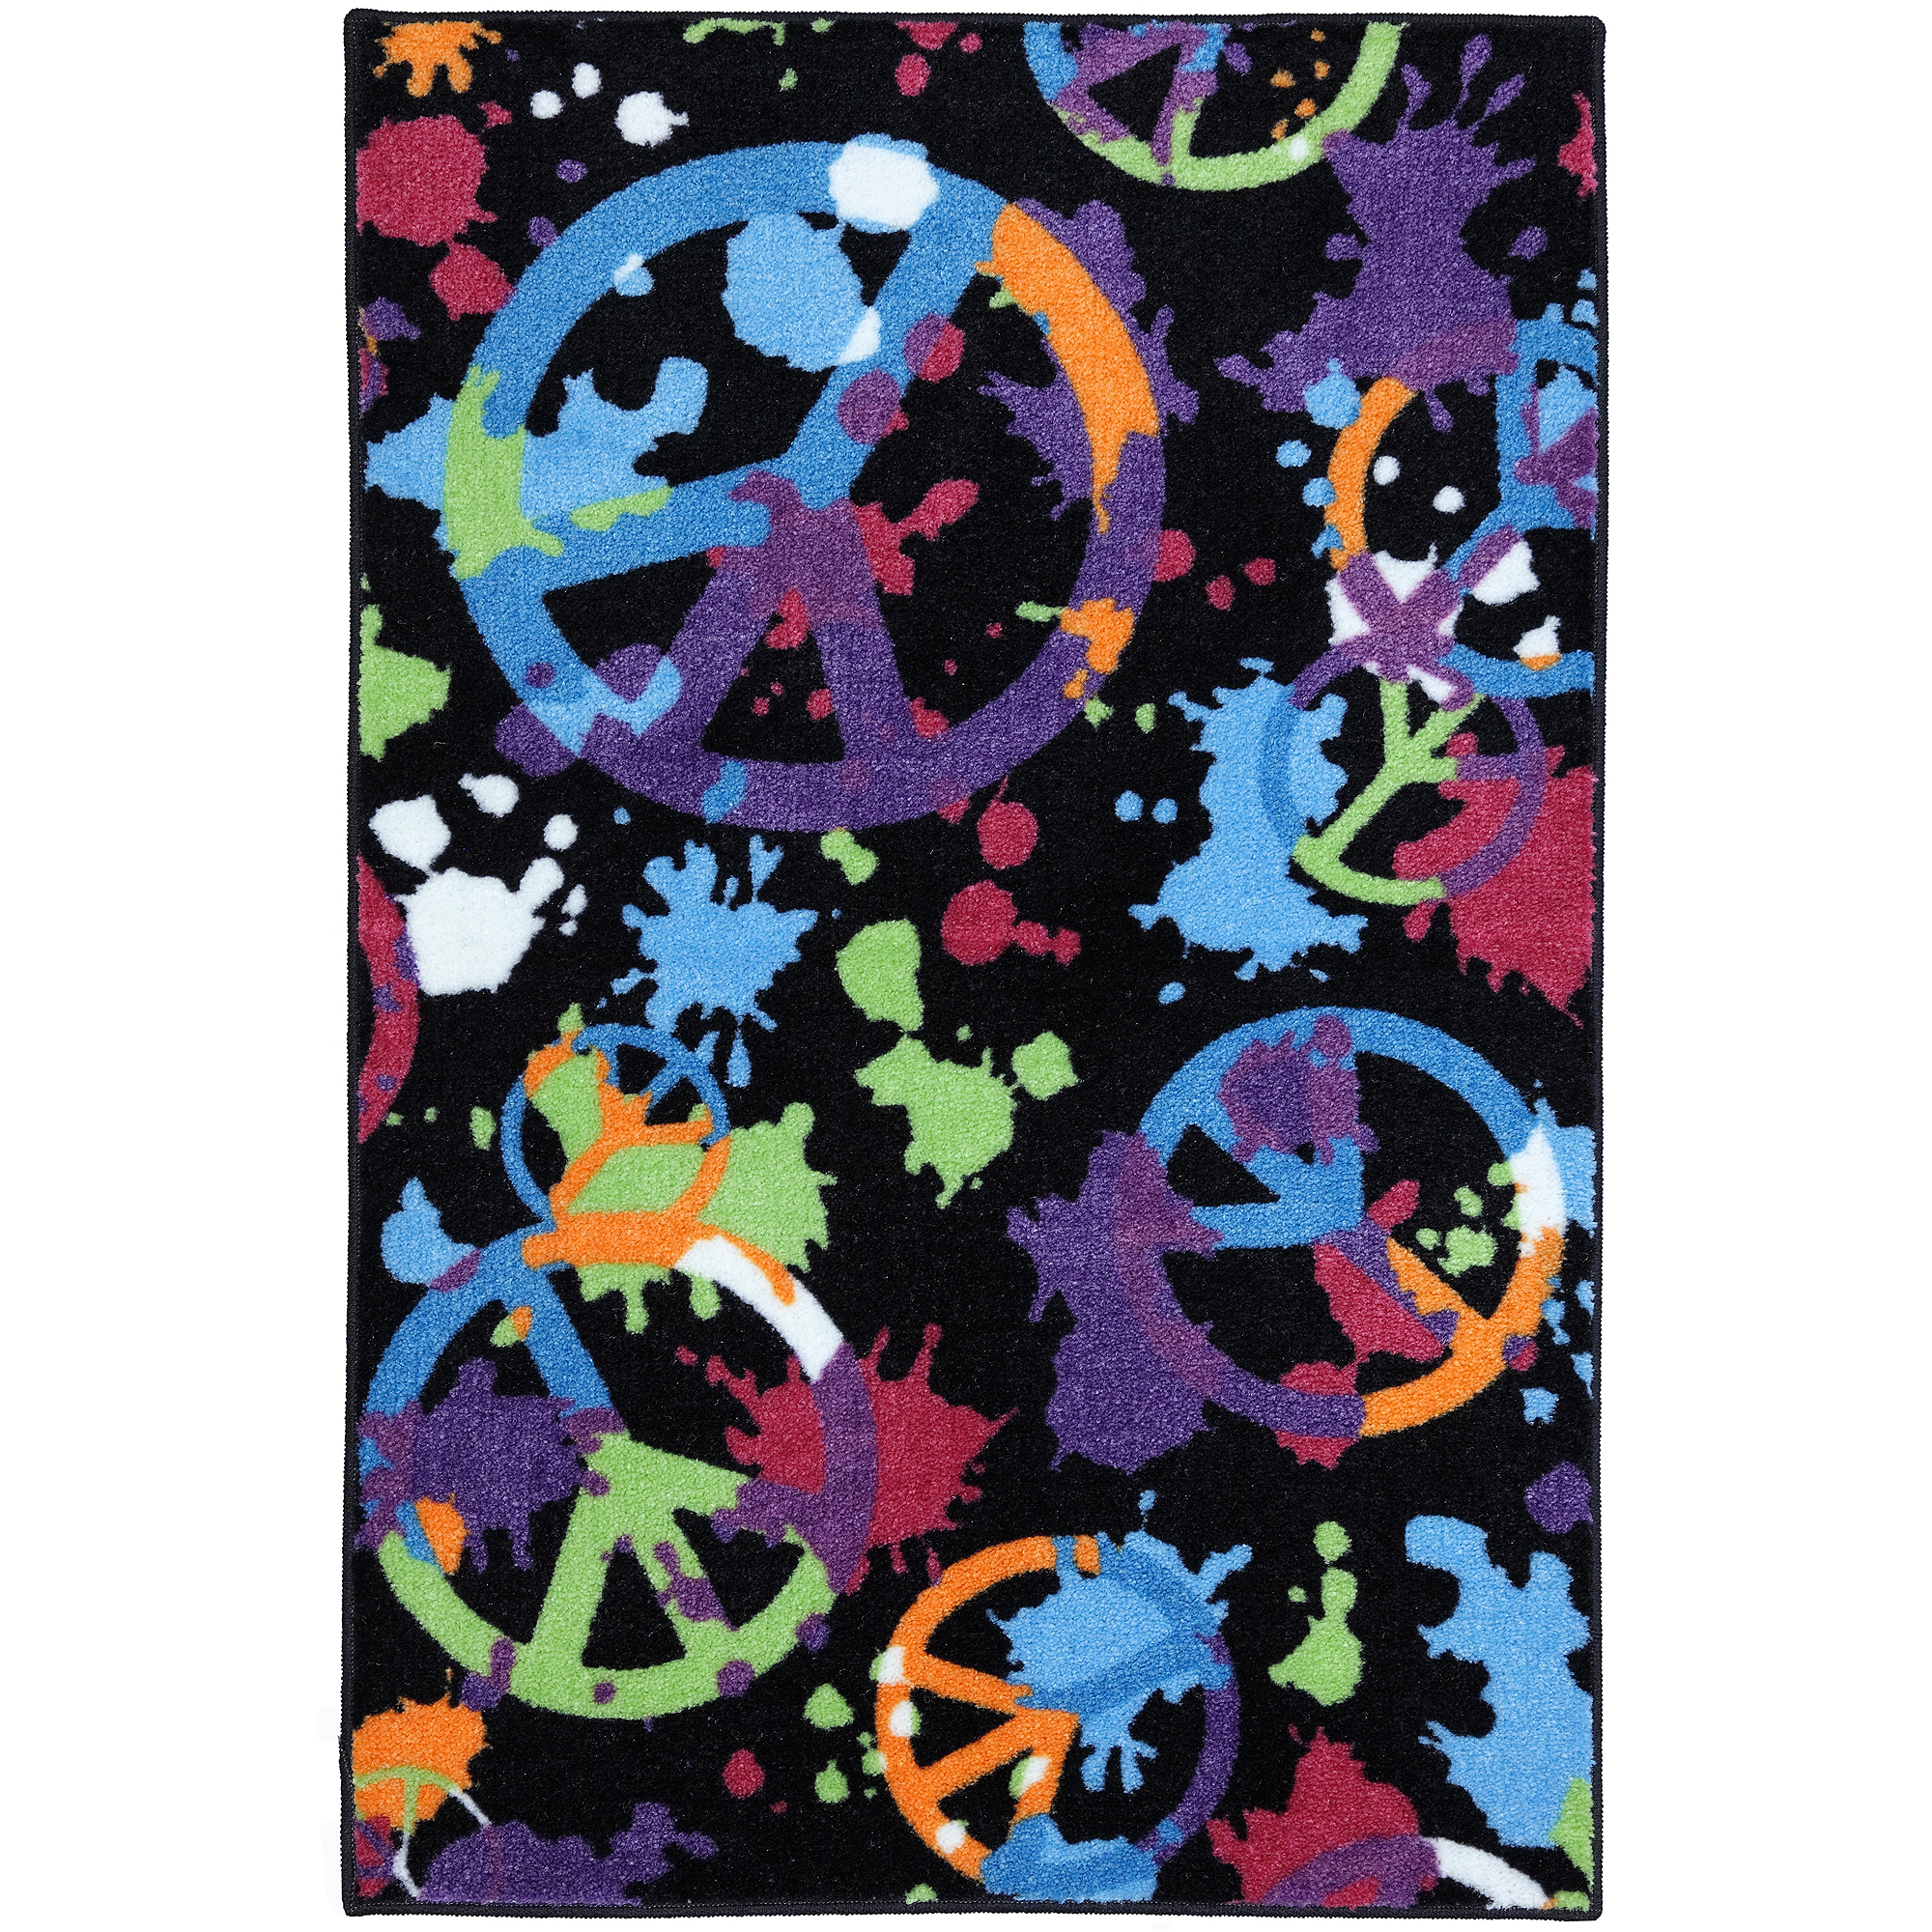 Your Zone Yz 30x46 Peace Splatter Multi Area Rug